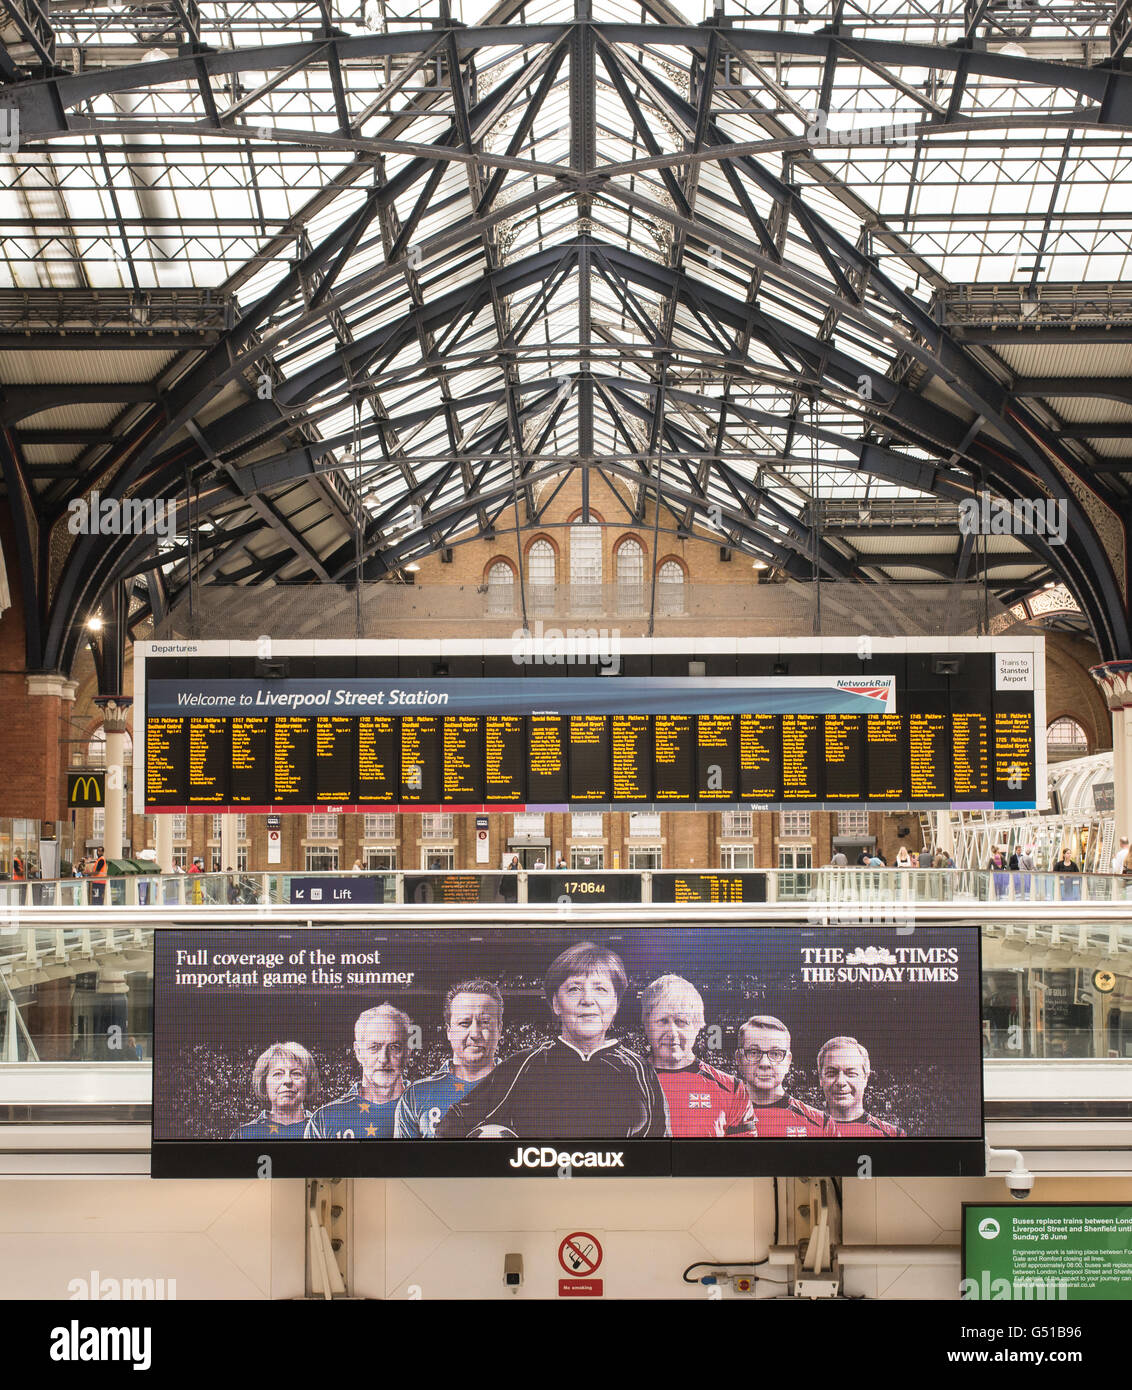 Add of 'The Times' on a digital billboard in Liverpool Street Station promoting the full coverage of the - Stock Image